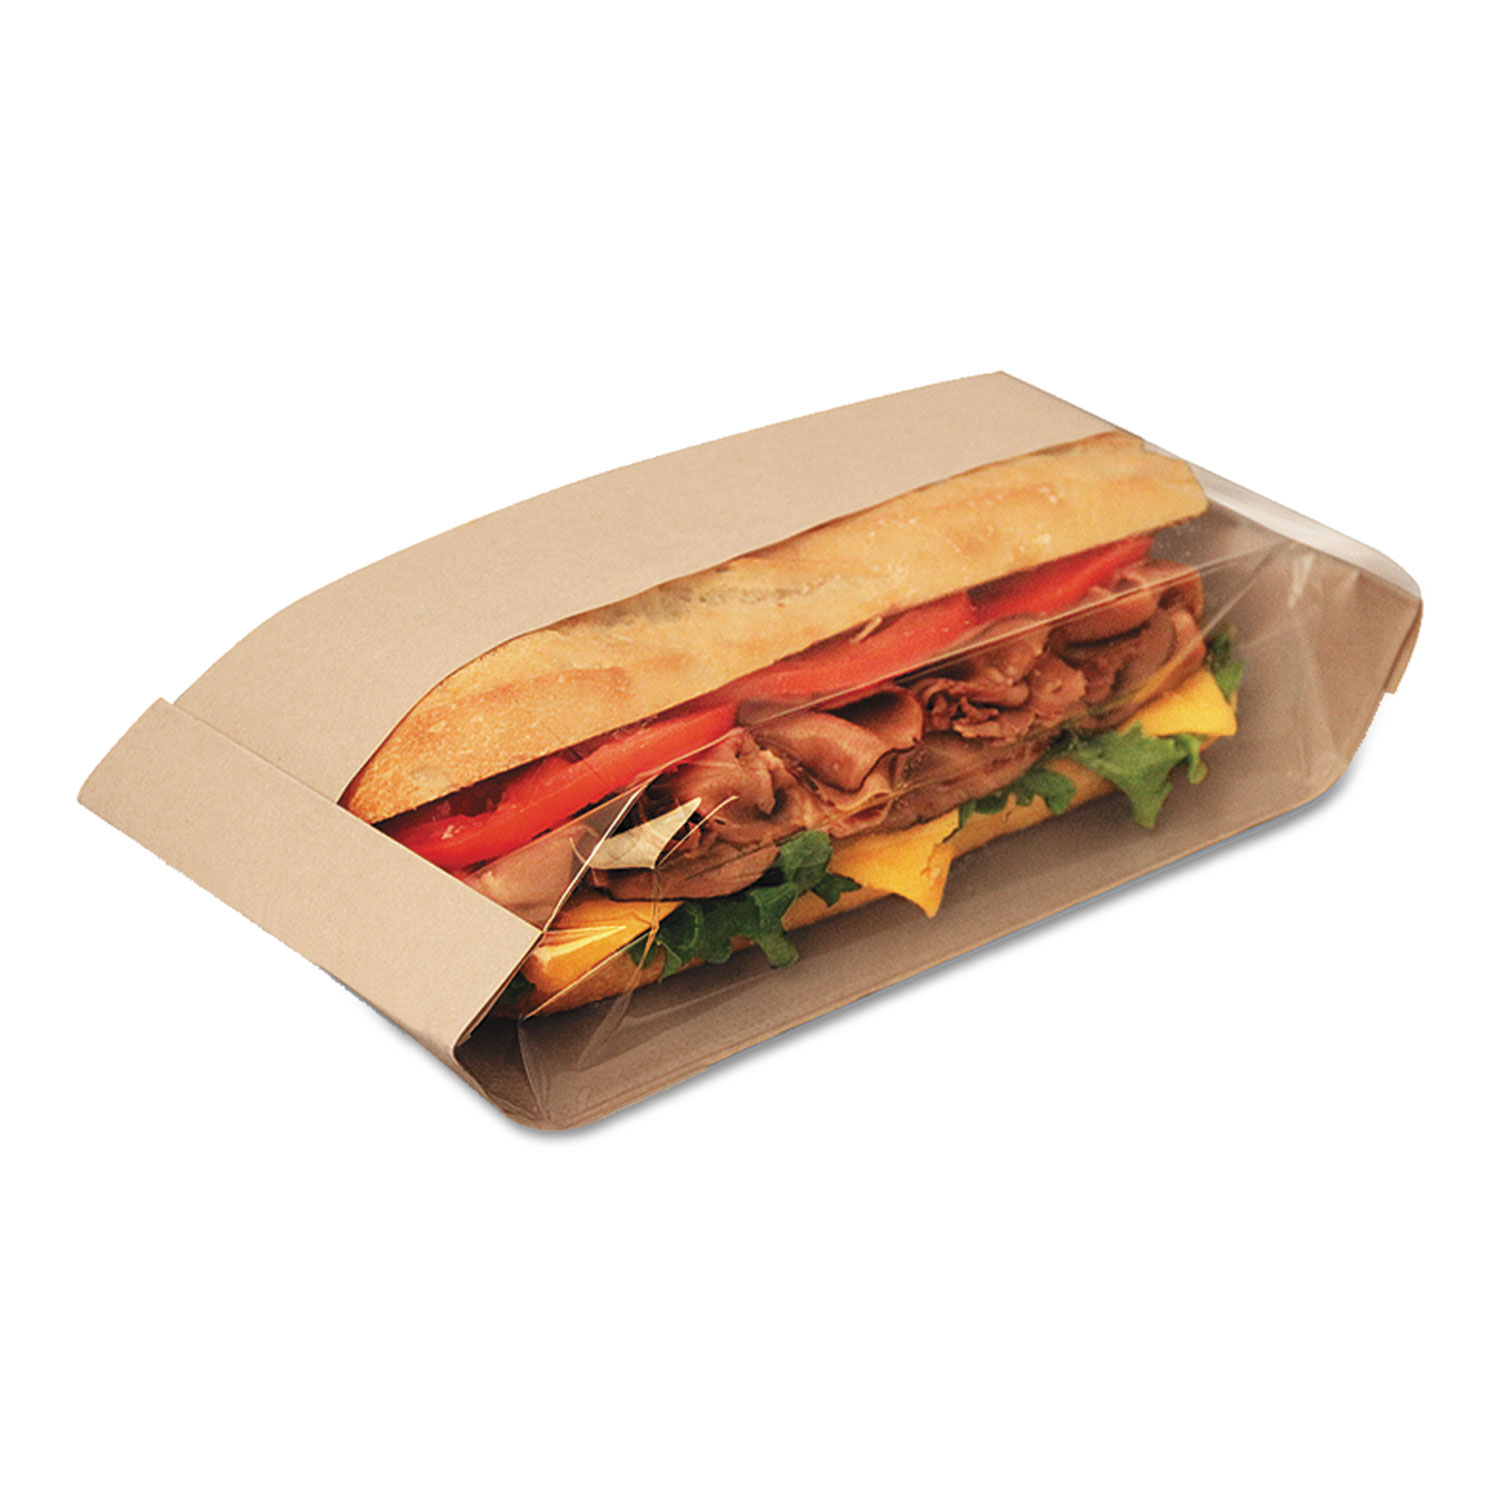 Dubl View Sandwich Bags, 2.55 mil, 10 3/4 x 3 1/2 x 2 1/4, Natural Brown, 500/CT